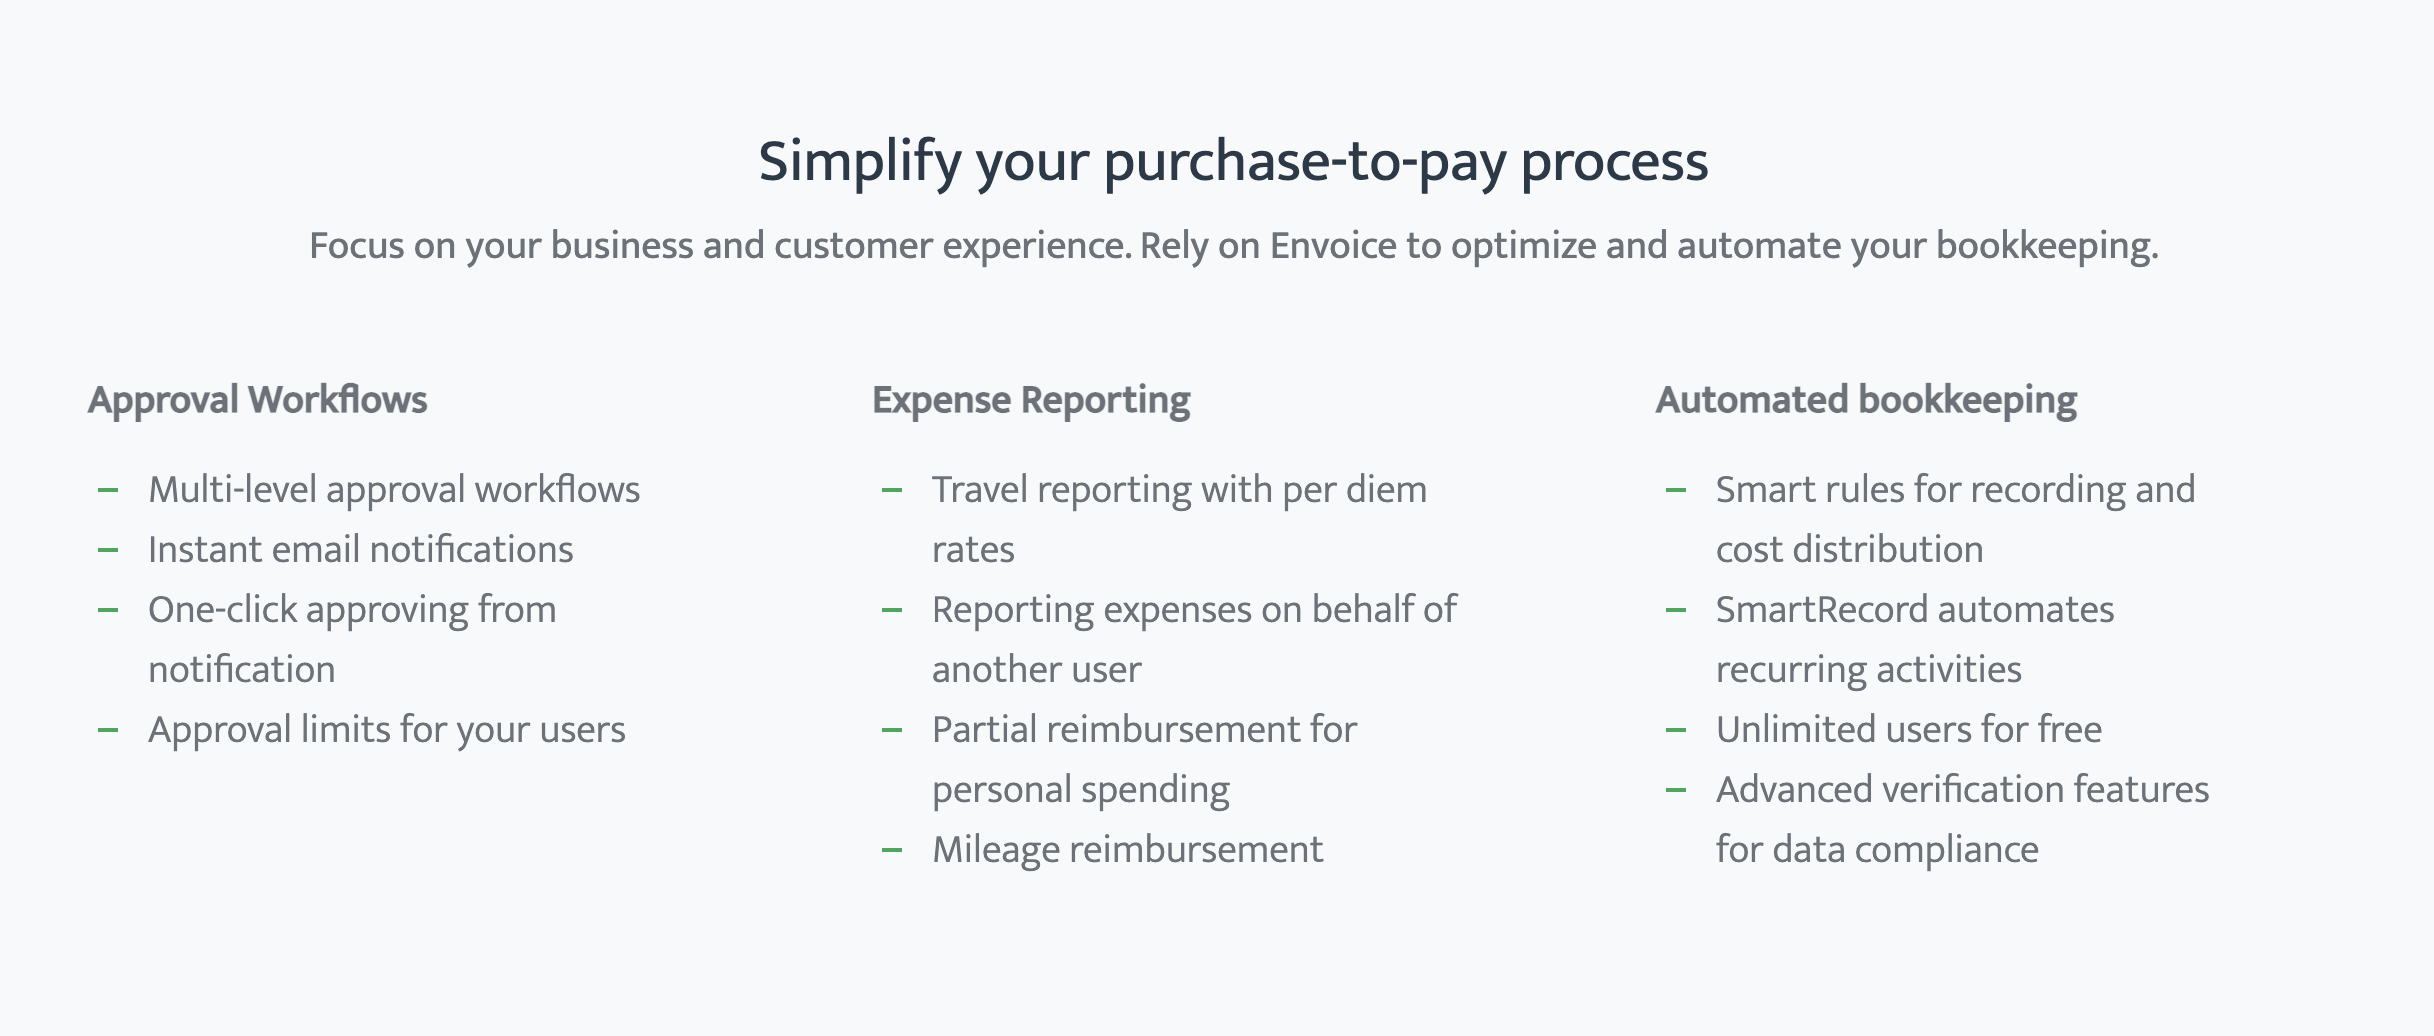 Manage your expenses and reporting with ease